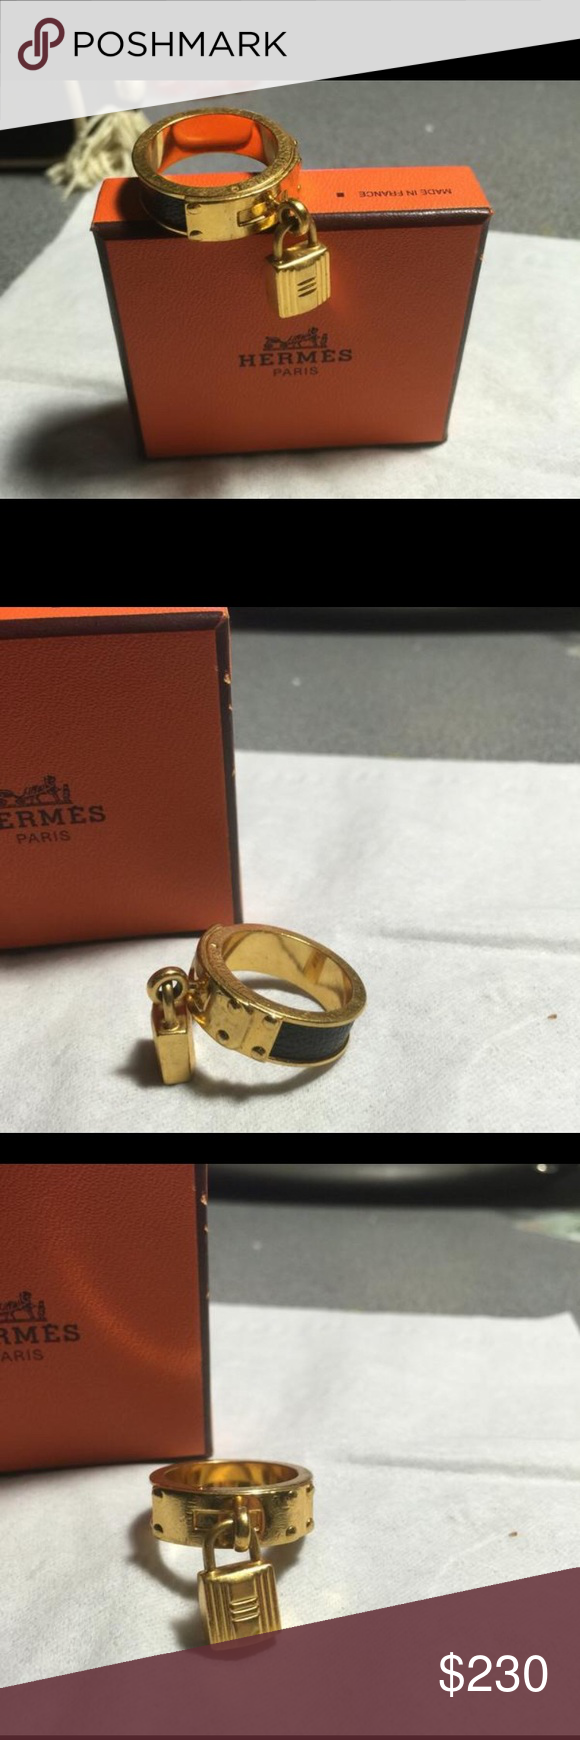 da35917266a2 ... ❗️Firm Price ❗ Timeless Classic Hermes scarf ring comes with the  box❗️you can use it ( as I did) as a ring or bracelet or even as a bag charm  ...